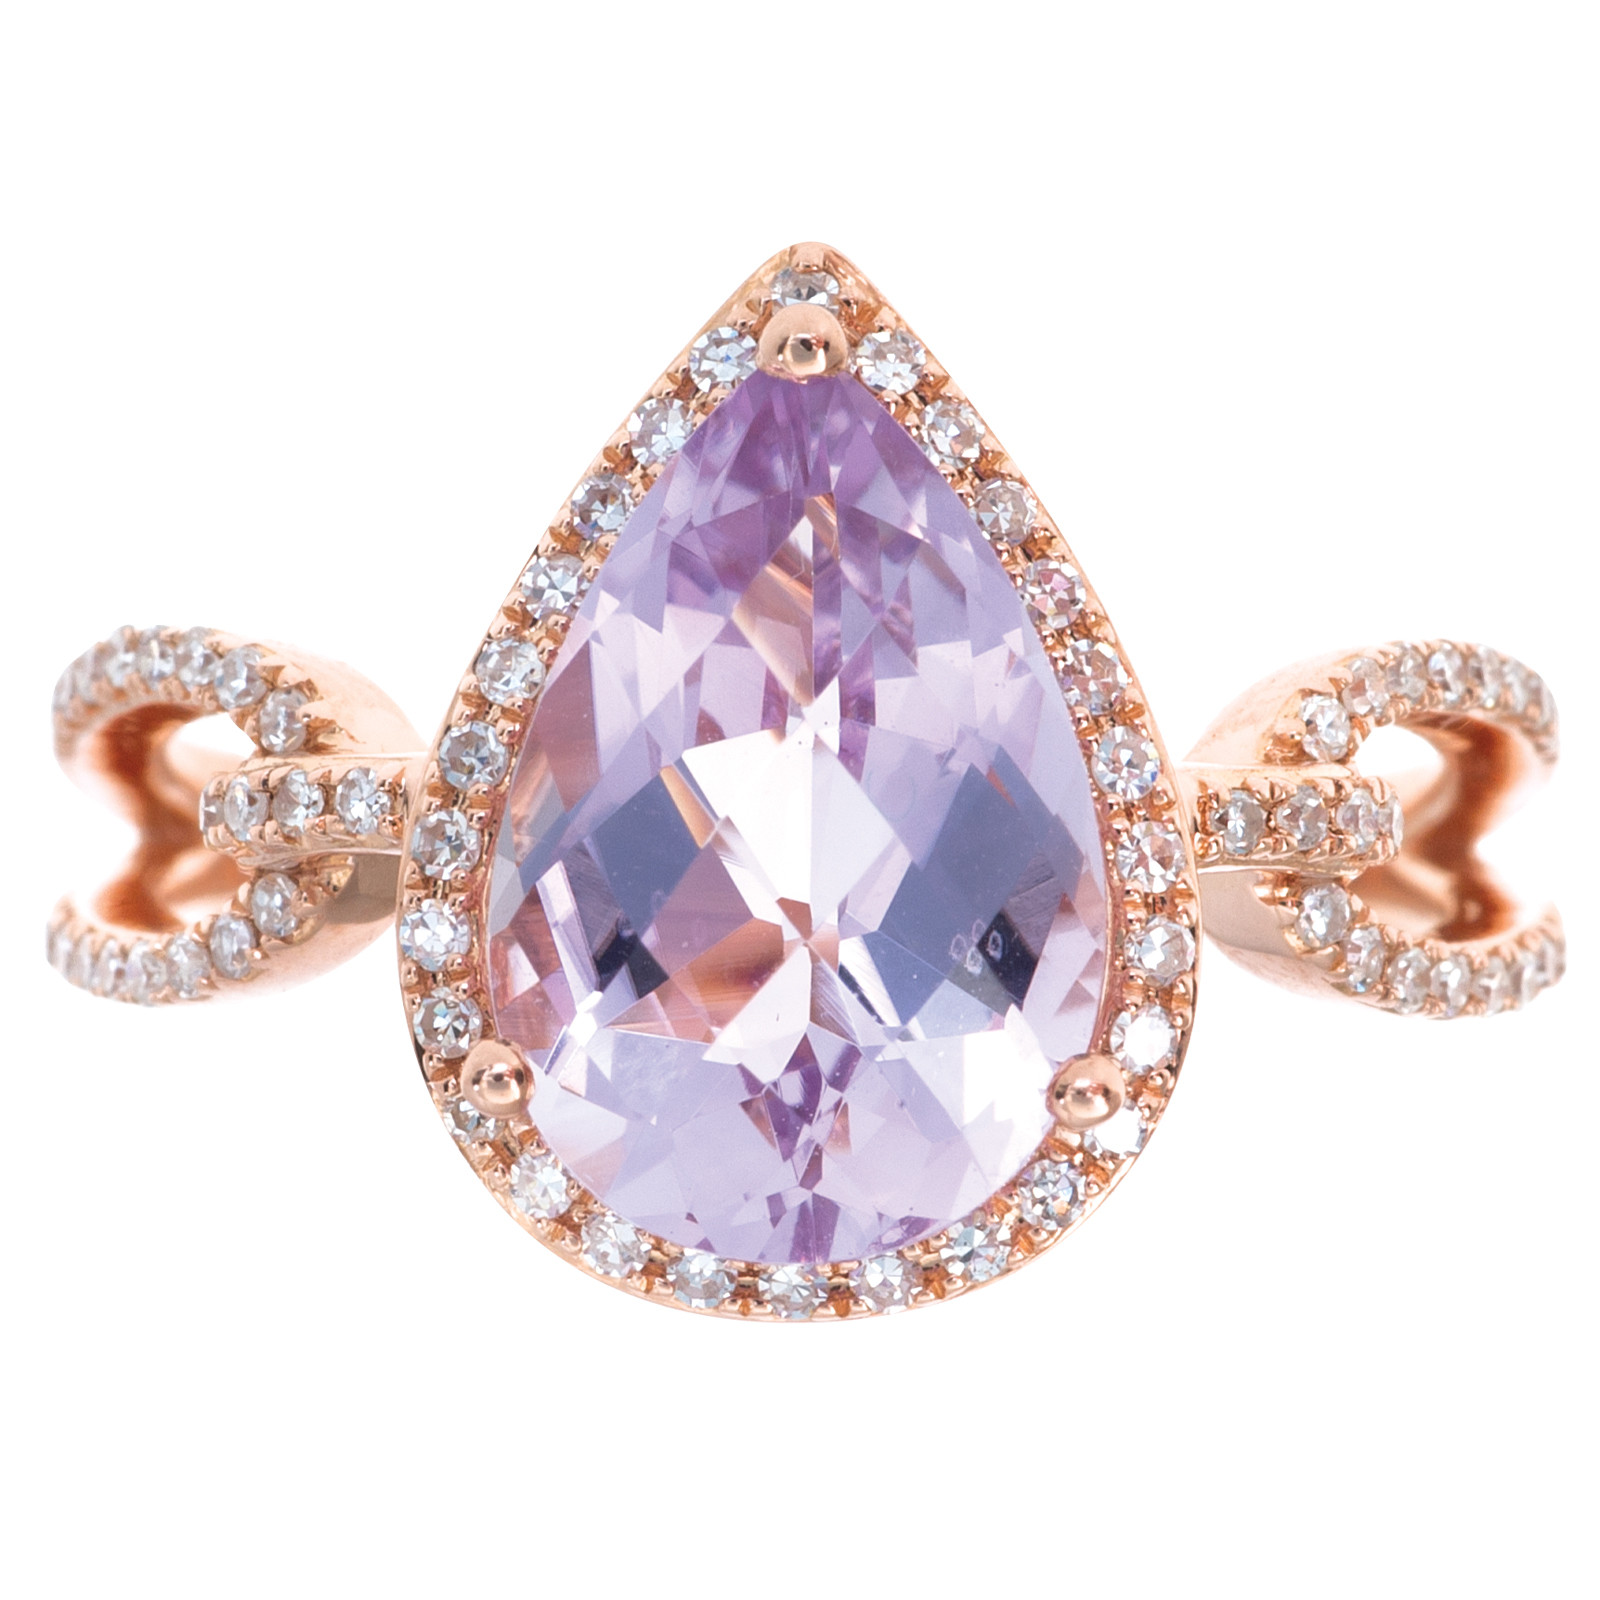 Vintage 3.70 CTW Kunzite & Diamond Ring